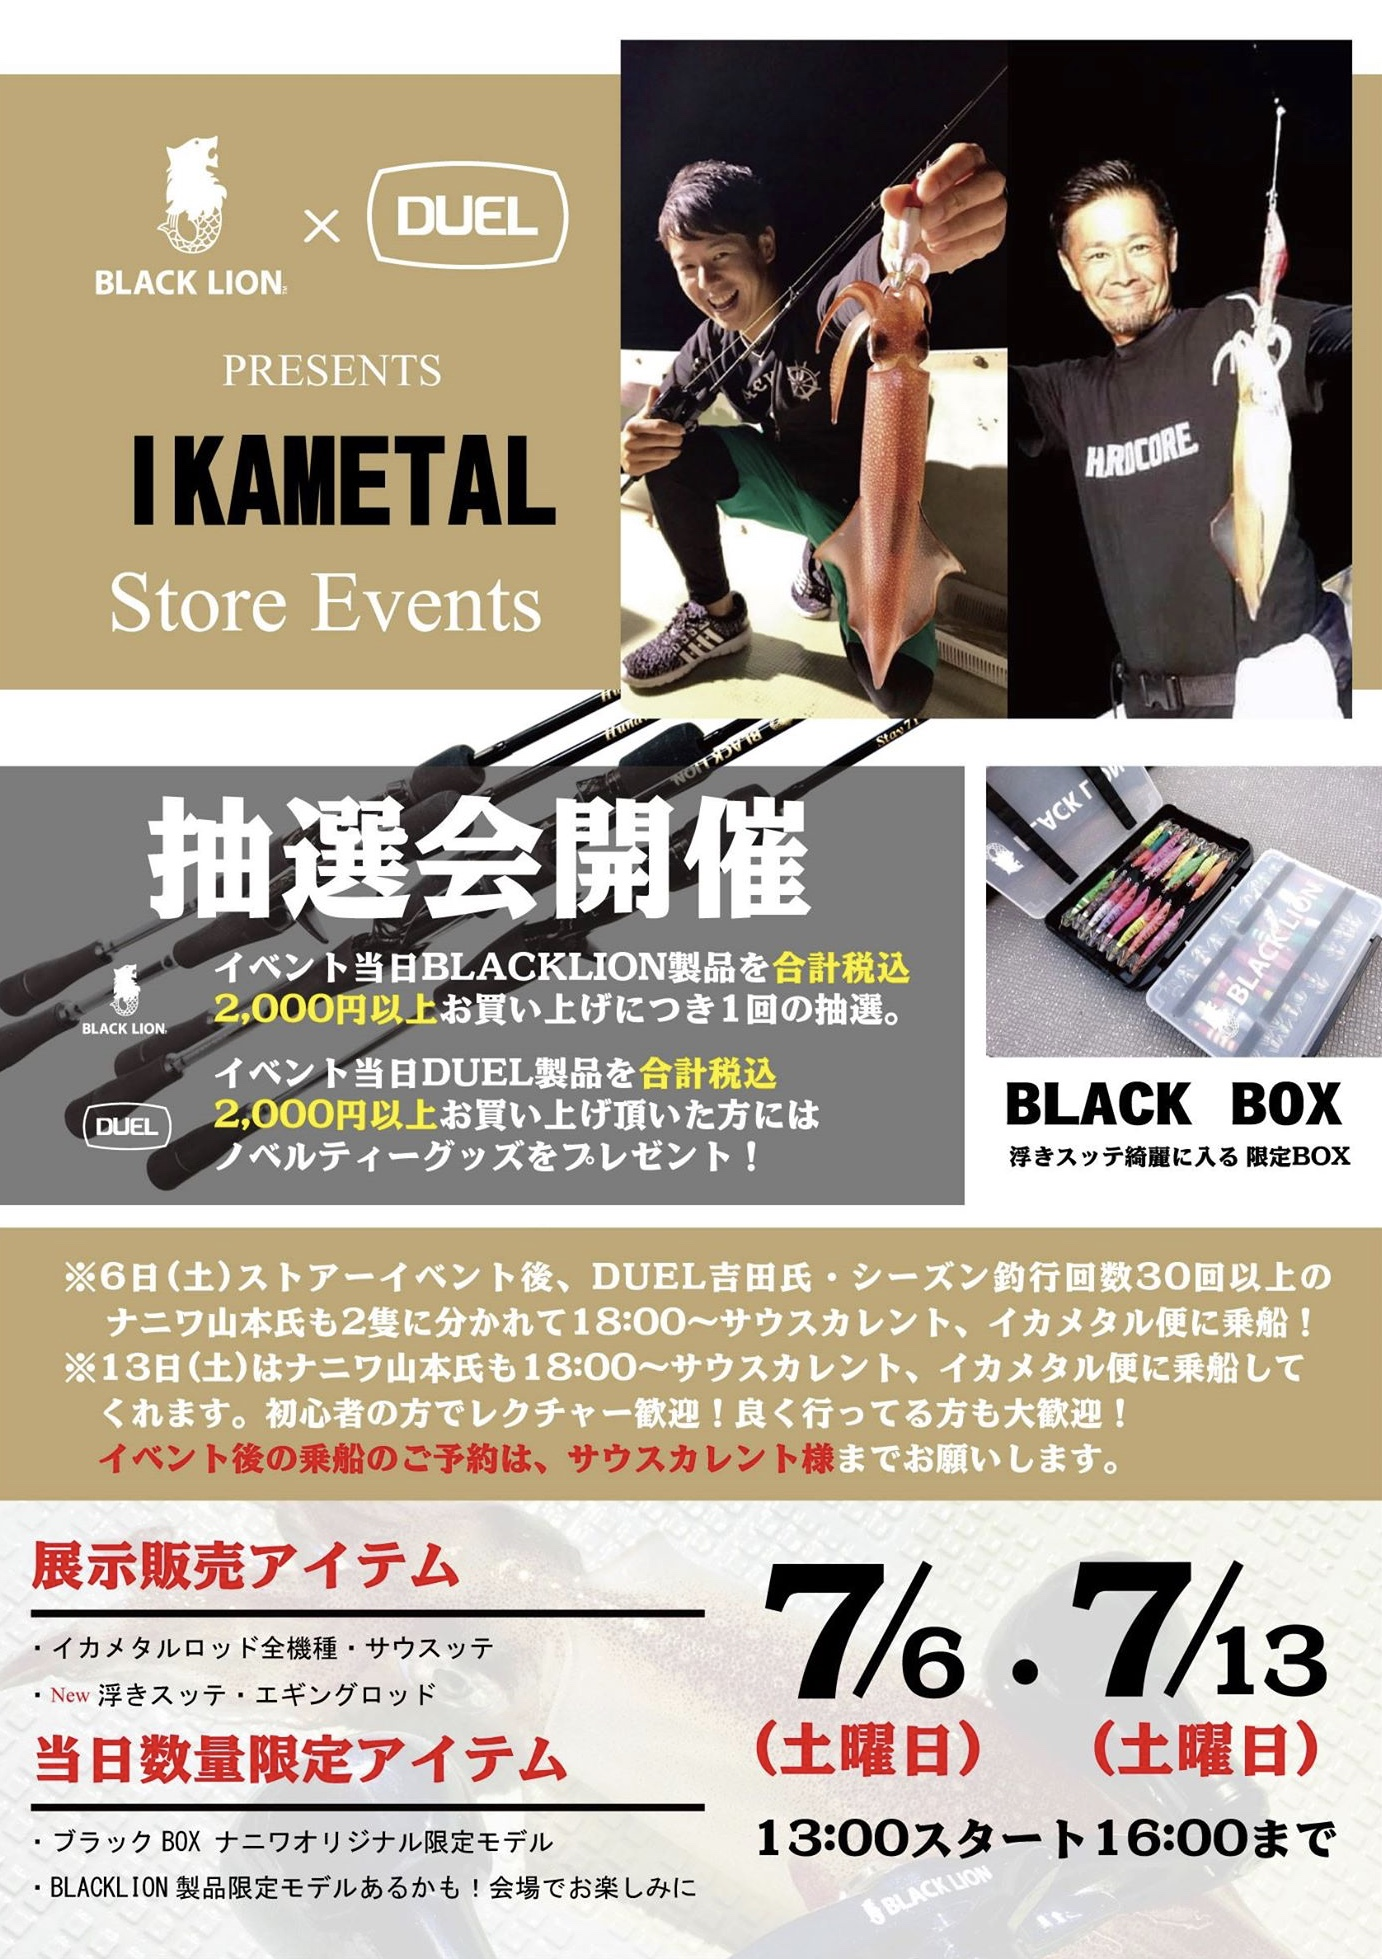 【 BLACKLION  ×  DUEL StoreEvents  】